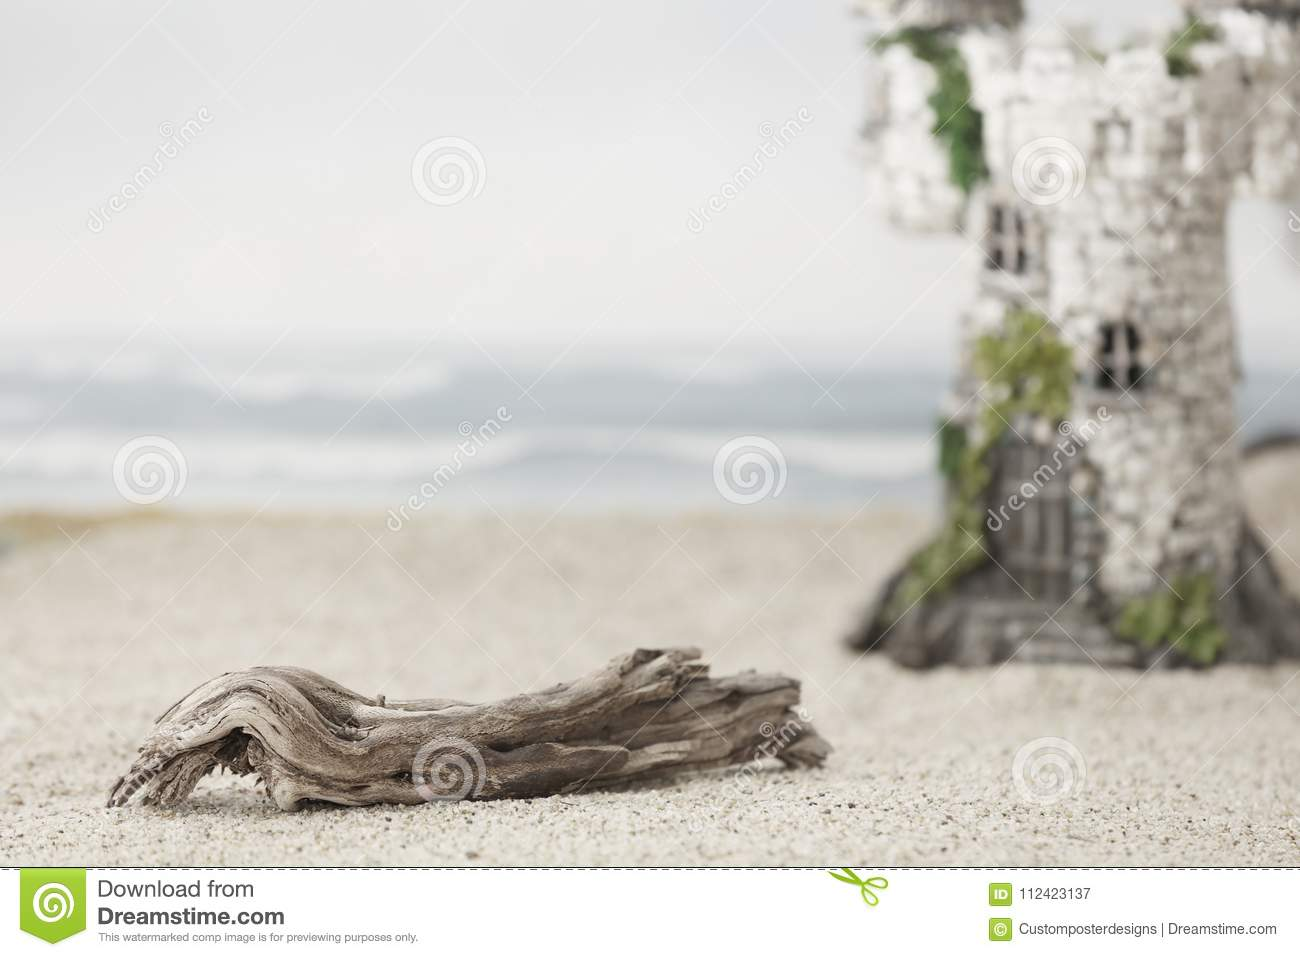 Download A Magic Castle At The Beach. Stock Image - Image of creative, imagination: 112423137